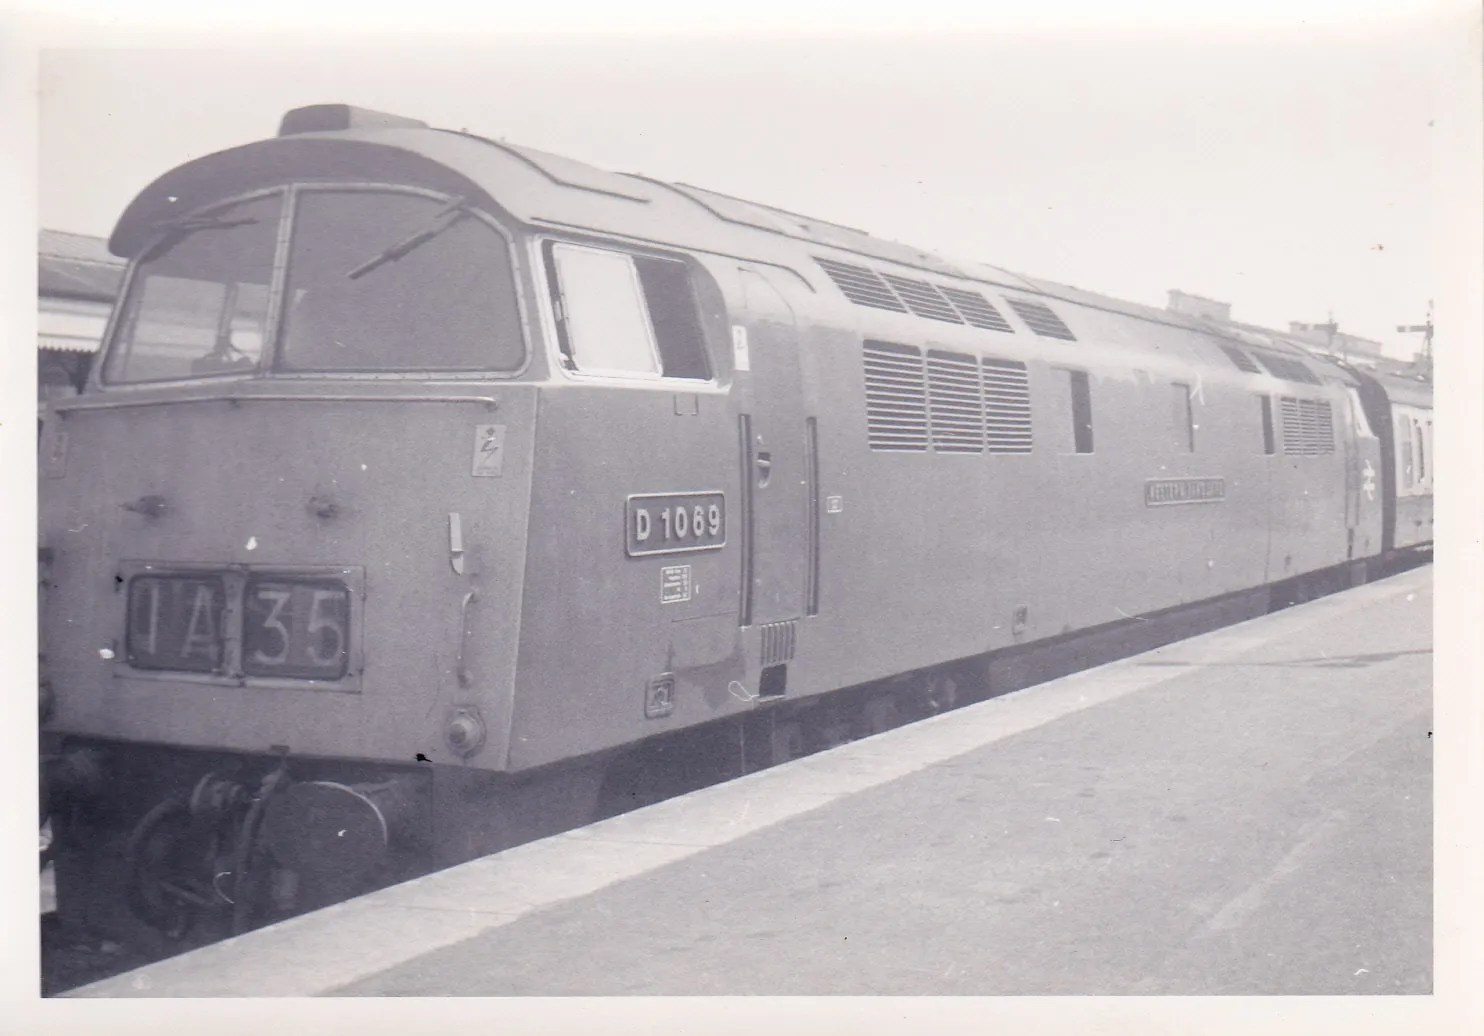 Class 52 1069 Western Vanguard on up train at Exeter St Davids depot June 1971